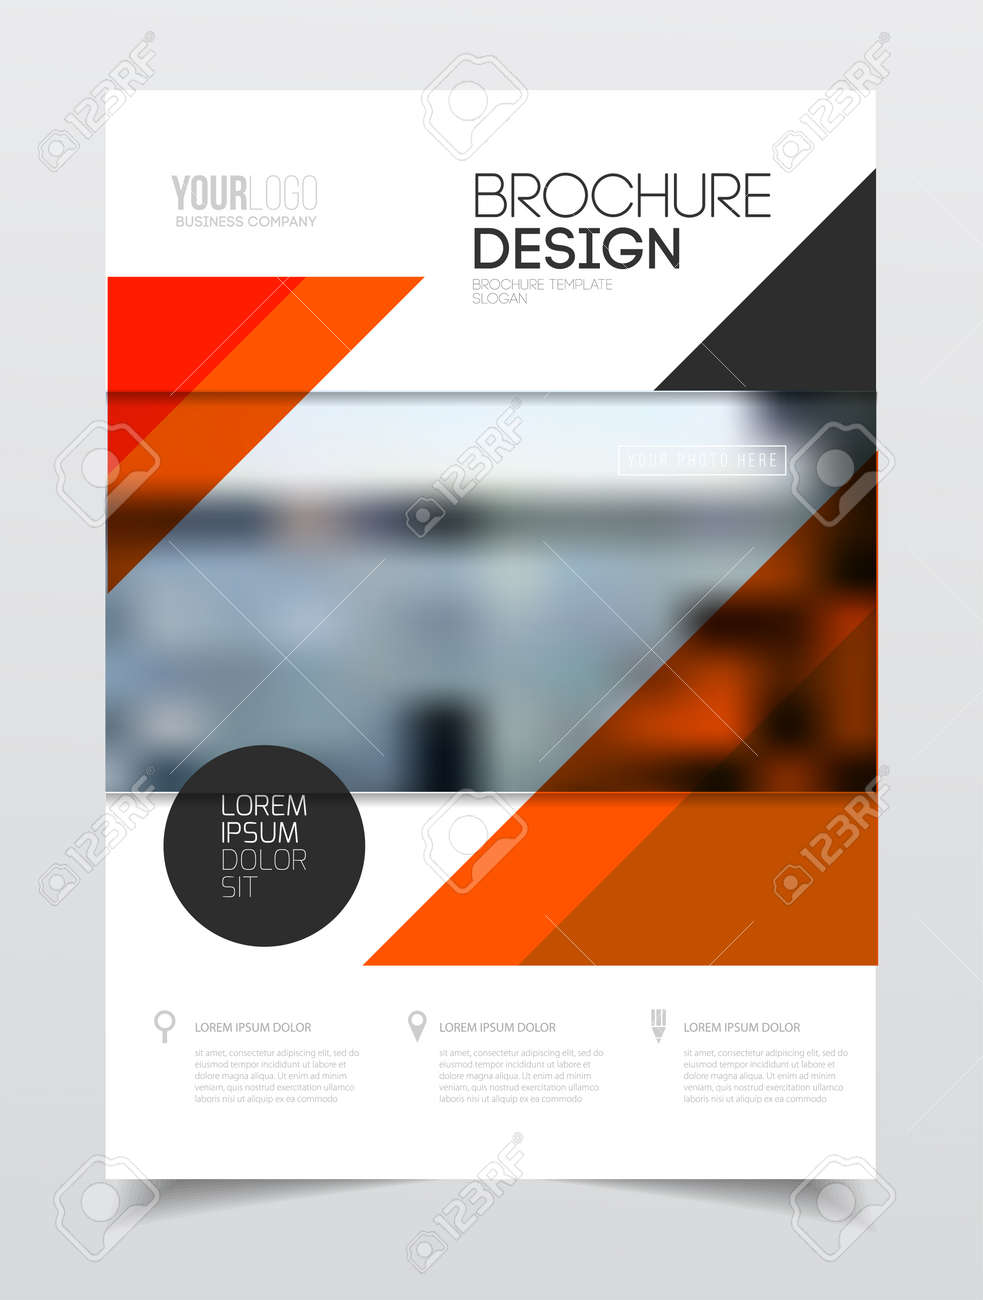 catalogue cover design annual report vector illustration template